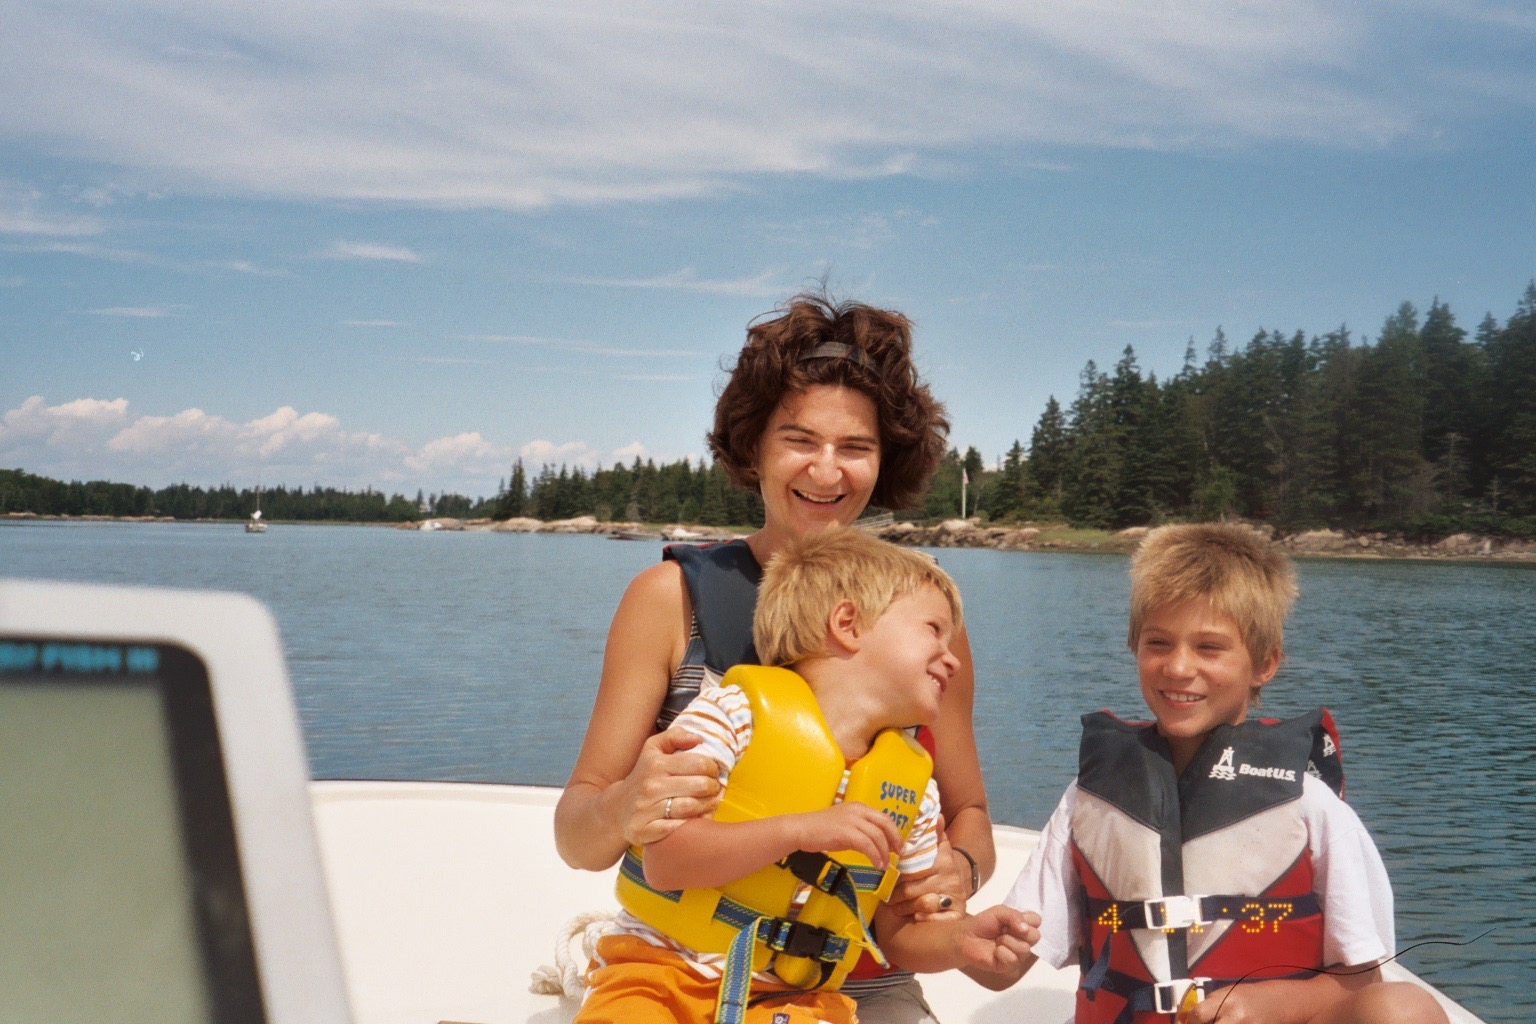 Jakob (right) with his mother and brother out on a boat ride